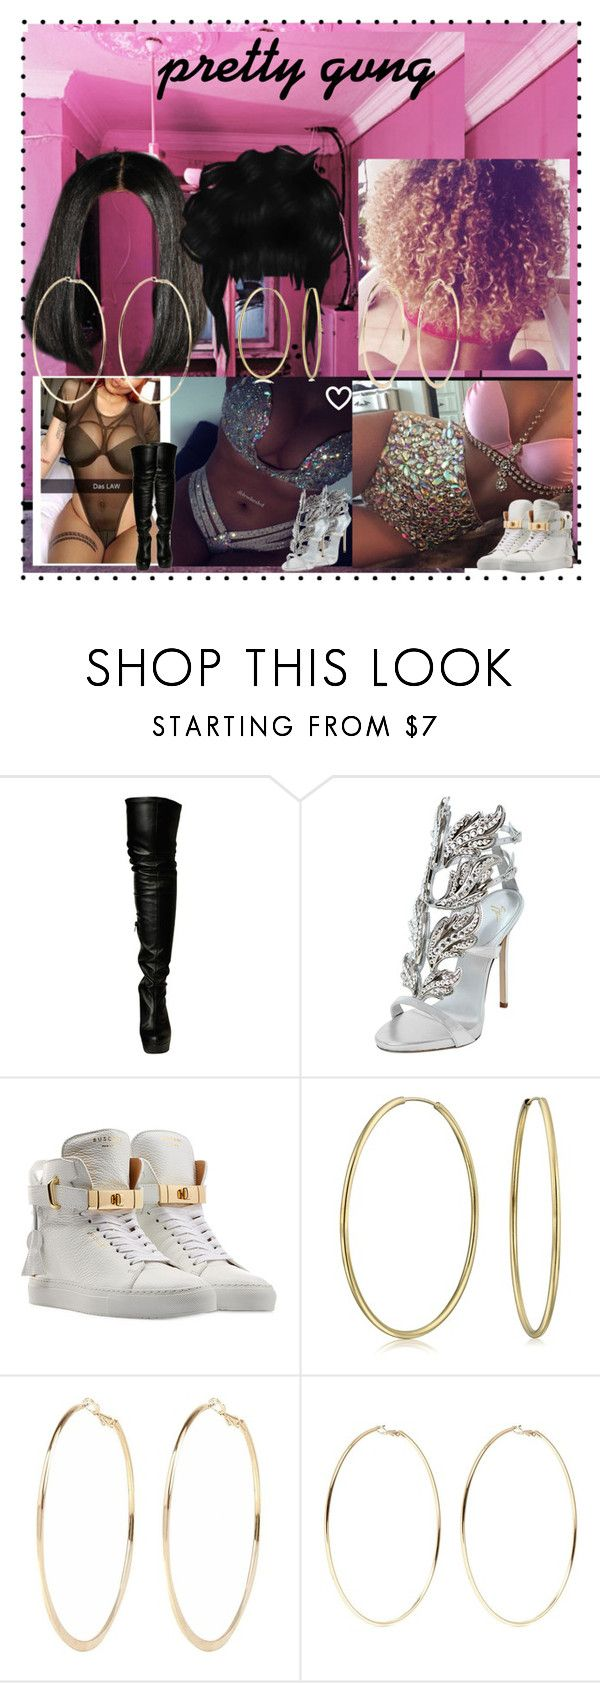 """VIDEO SHOOT"" by princesscece ❤ liked on Polyvore featuring Wild Pair, Giuseppe Zanotti, BUSCEMI, Bling Jewelry, River Island and Kenneth Jay Lane"